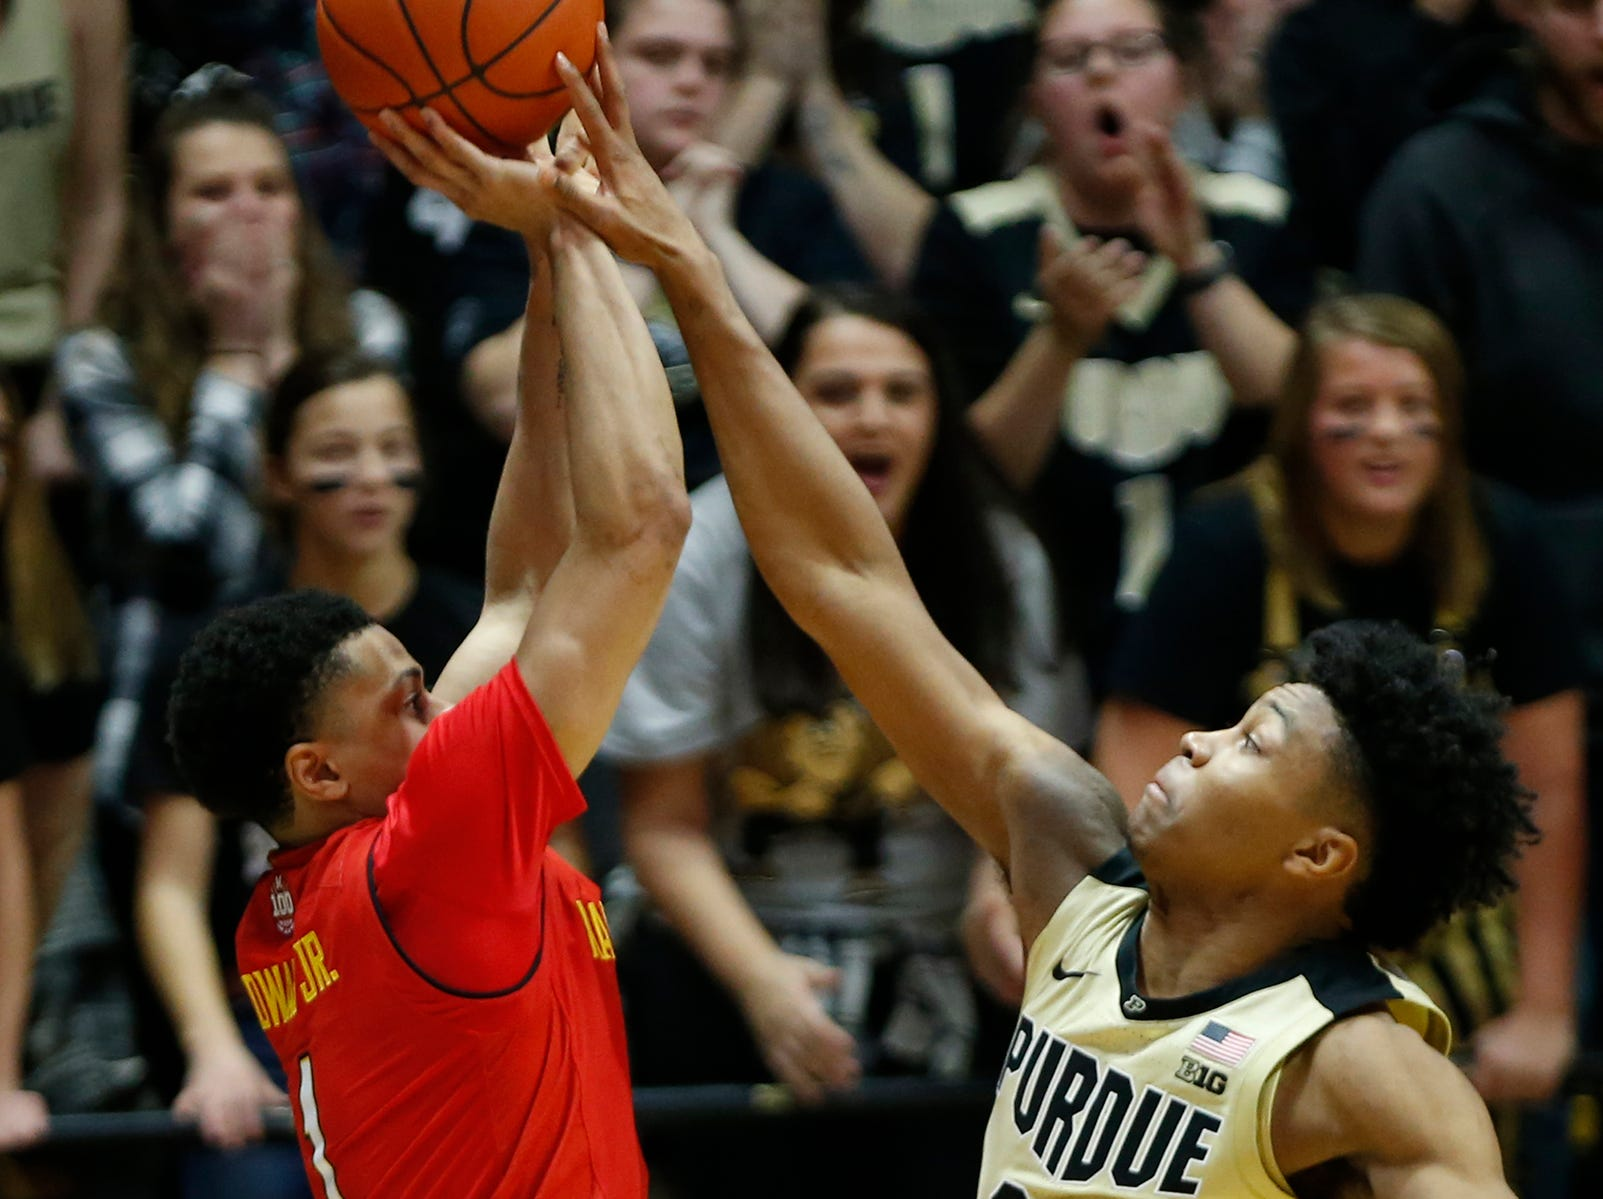 Nojel Eastern of Purdue blocks the shot of Anthony Cowan Jr. of Maryland as time expires Thursday, December 6, 2018, at Mackey Arena. Purdue defeated Maryland 62-60.